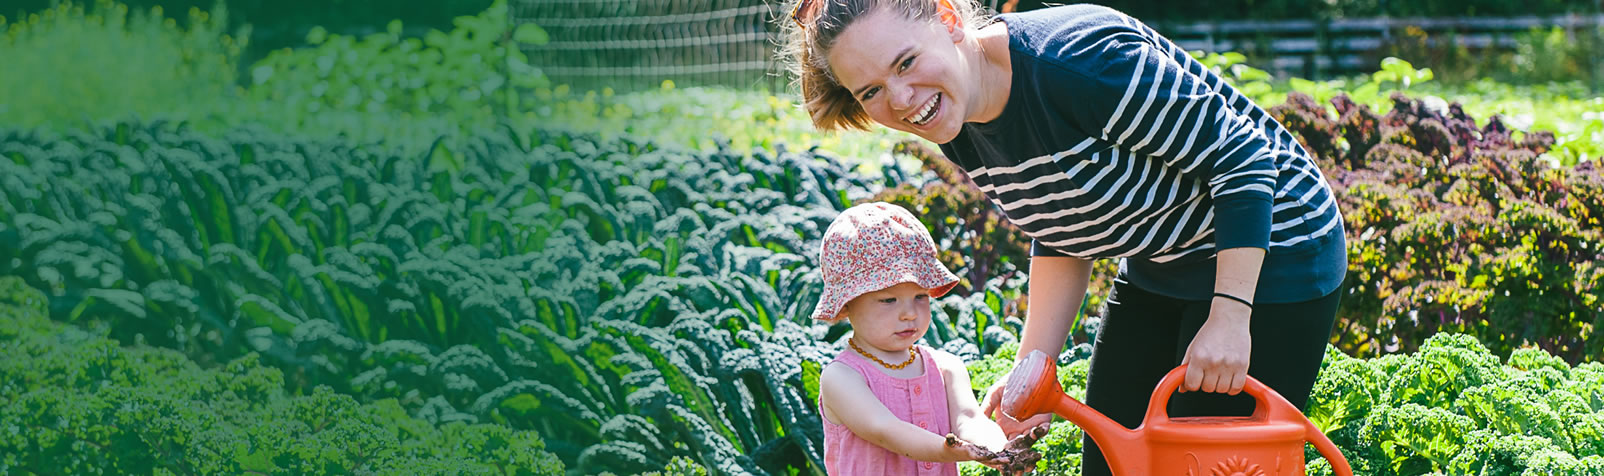 [Inspiring Hope, Caring for Creation] A Rocha intern gardening with a young child